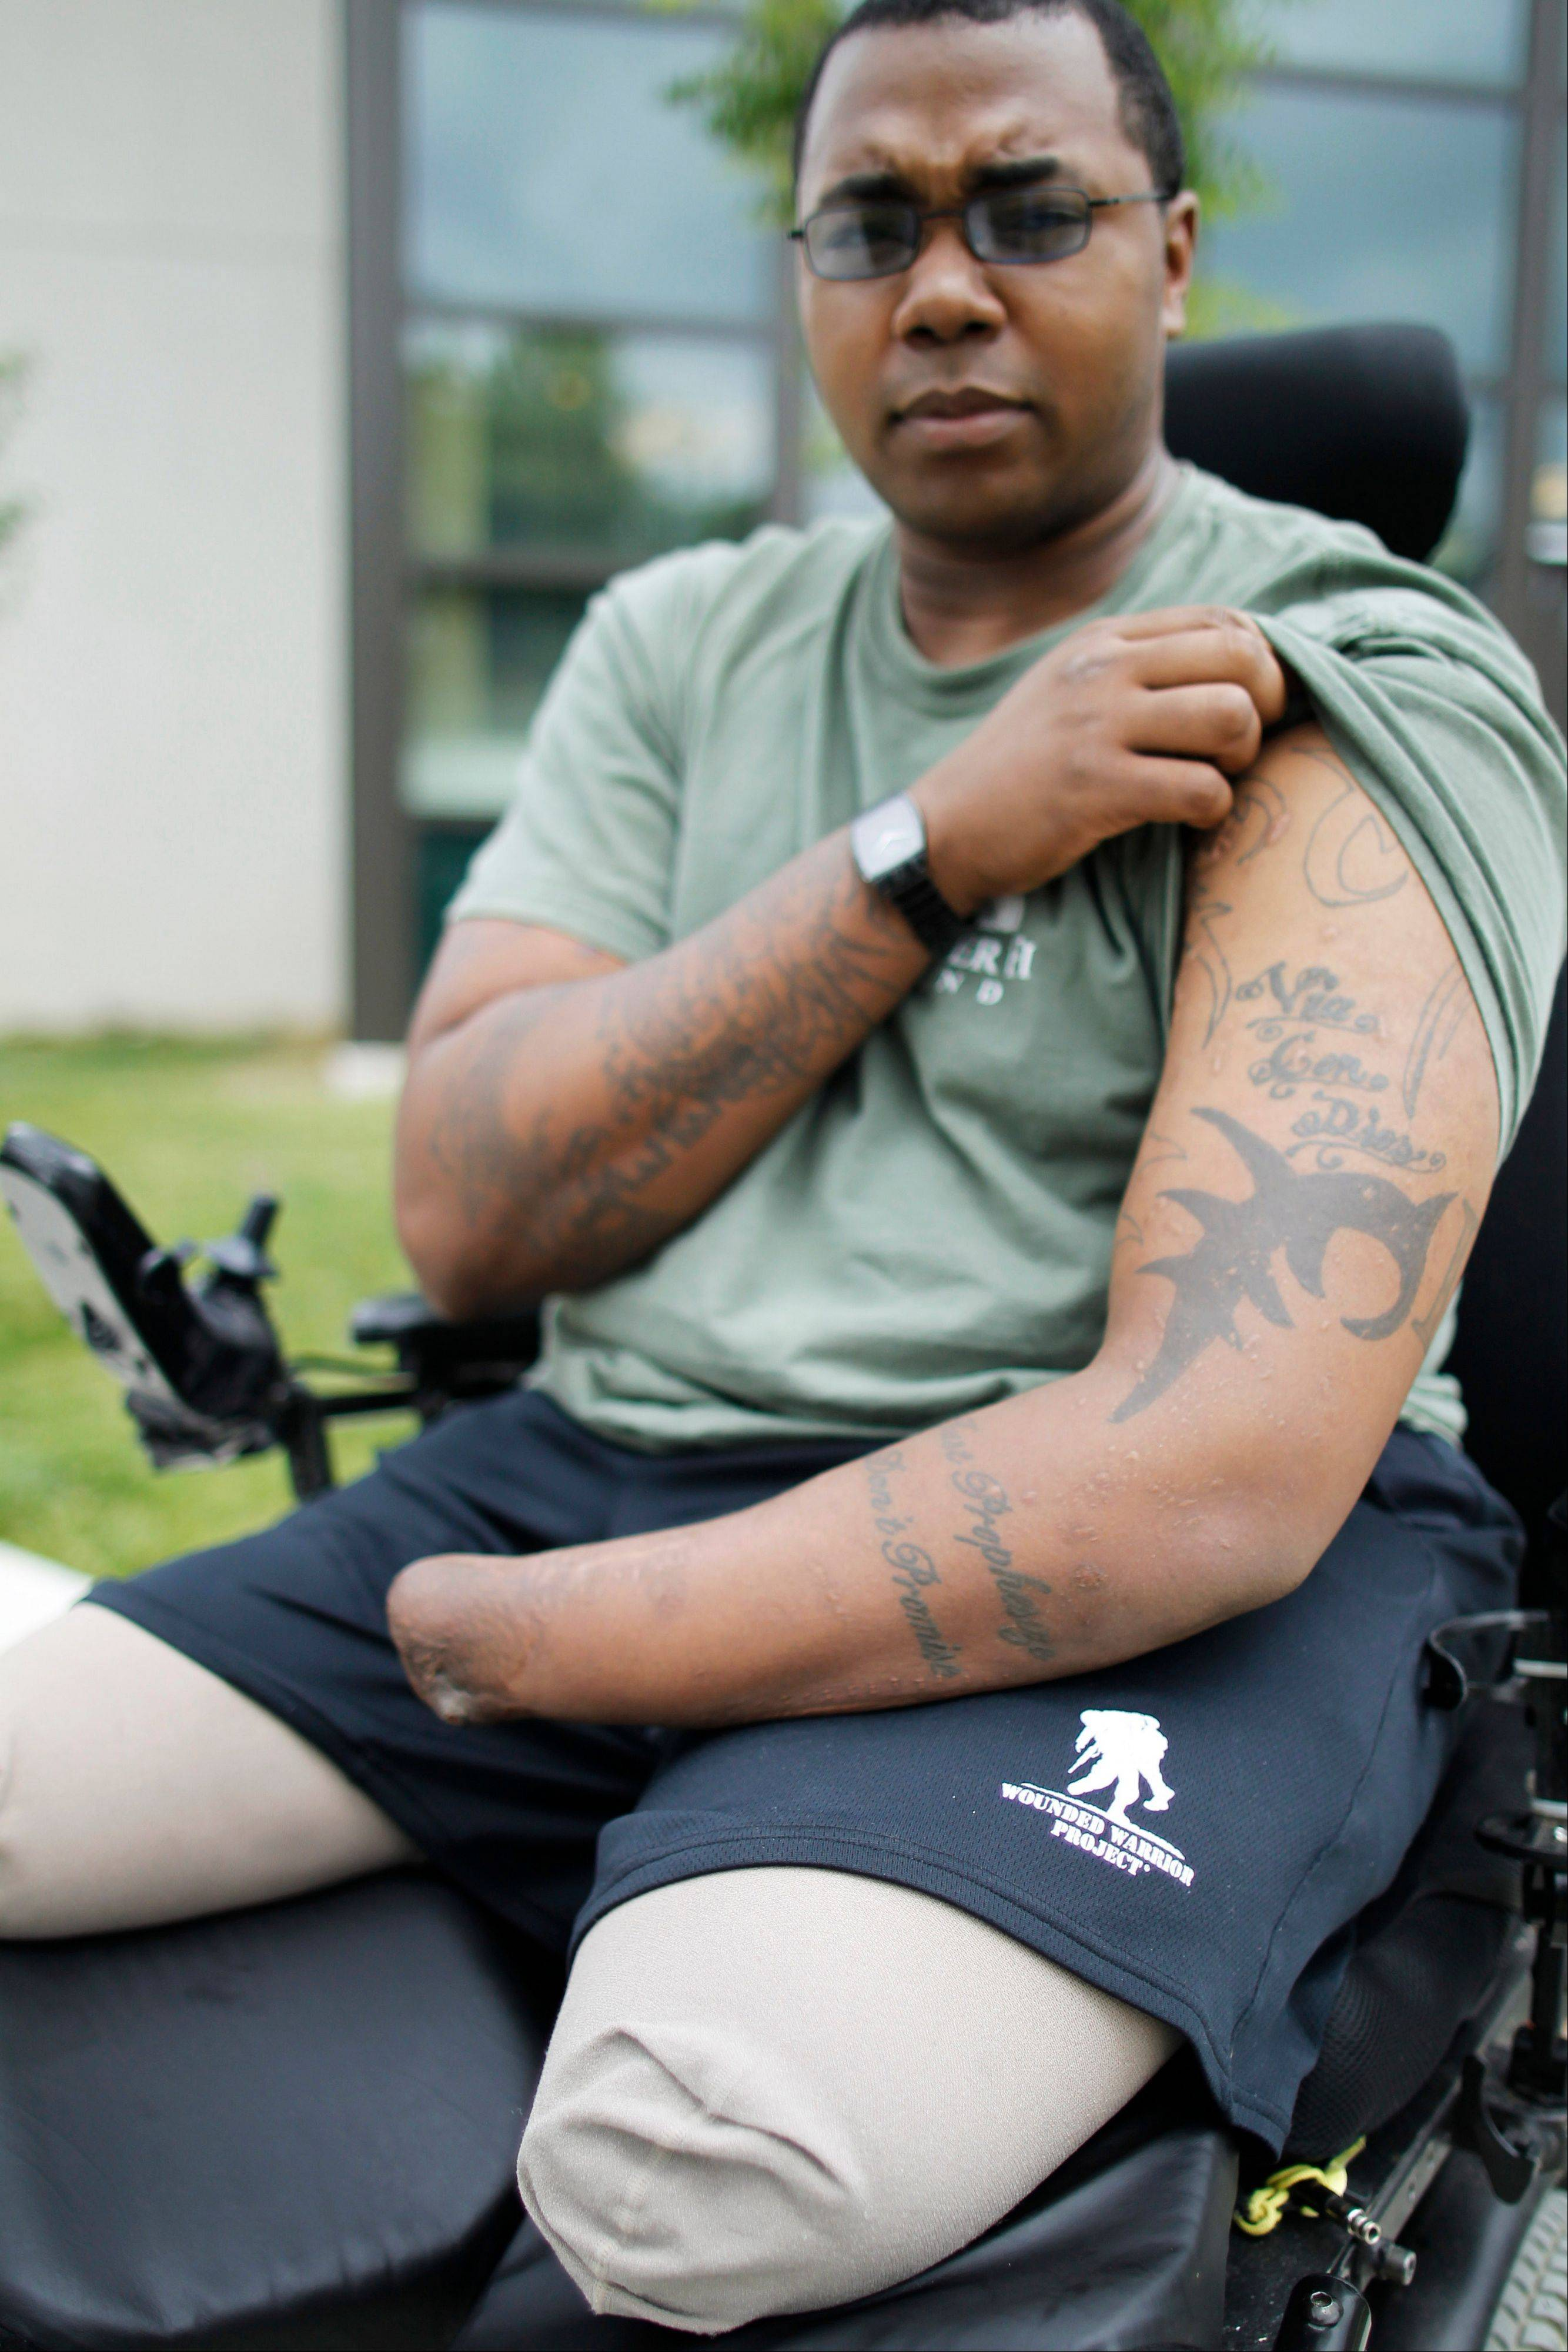 Marine Cpl. Larry Bailey II of Zion shows the tattoos on his arm at Walter Reed National Military Medical Center in Bethesda, Md., on Tuesday. After tripping a rooftop bomb in Afghanistan in June 2011, the 26-year-old Marine remembers flying into the air, then fellow troops attending to him. Bailey, who ended up a triple amputee, expects to get a hand transplant this summer.